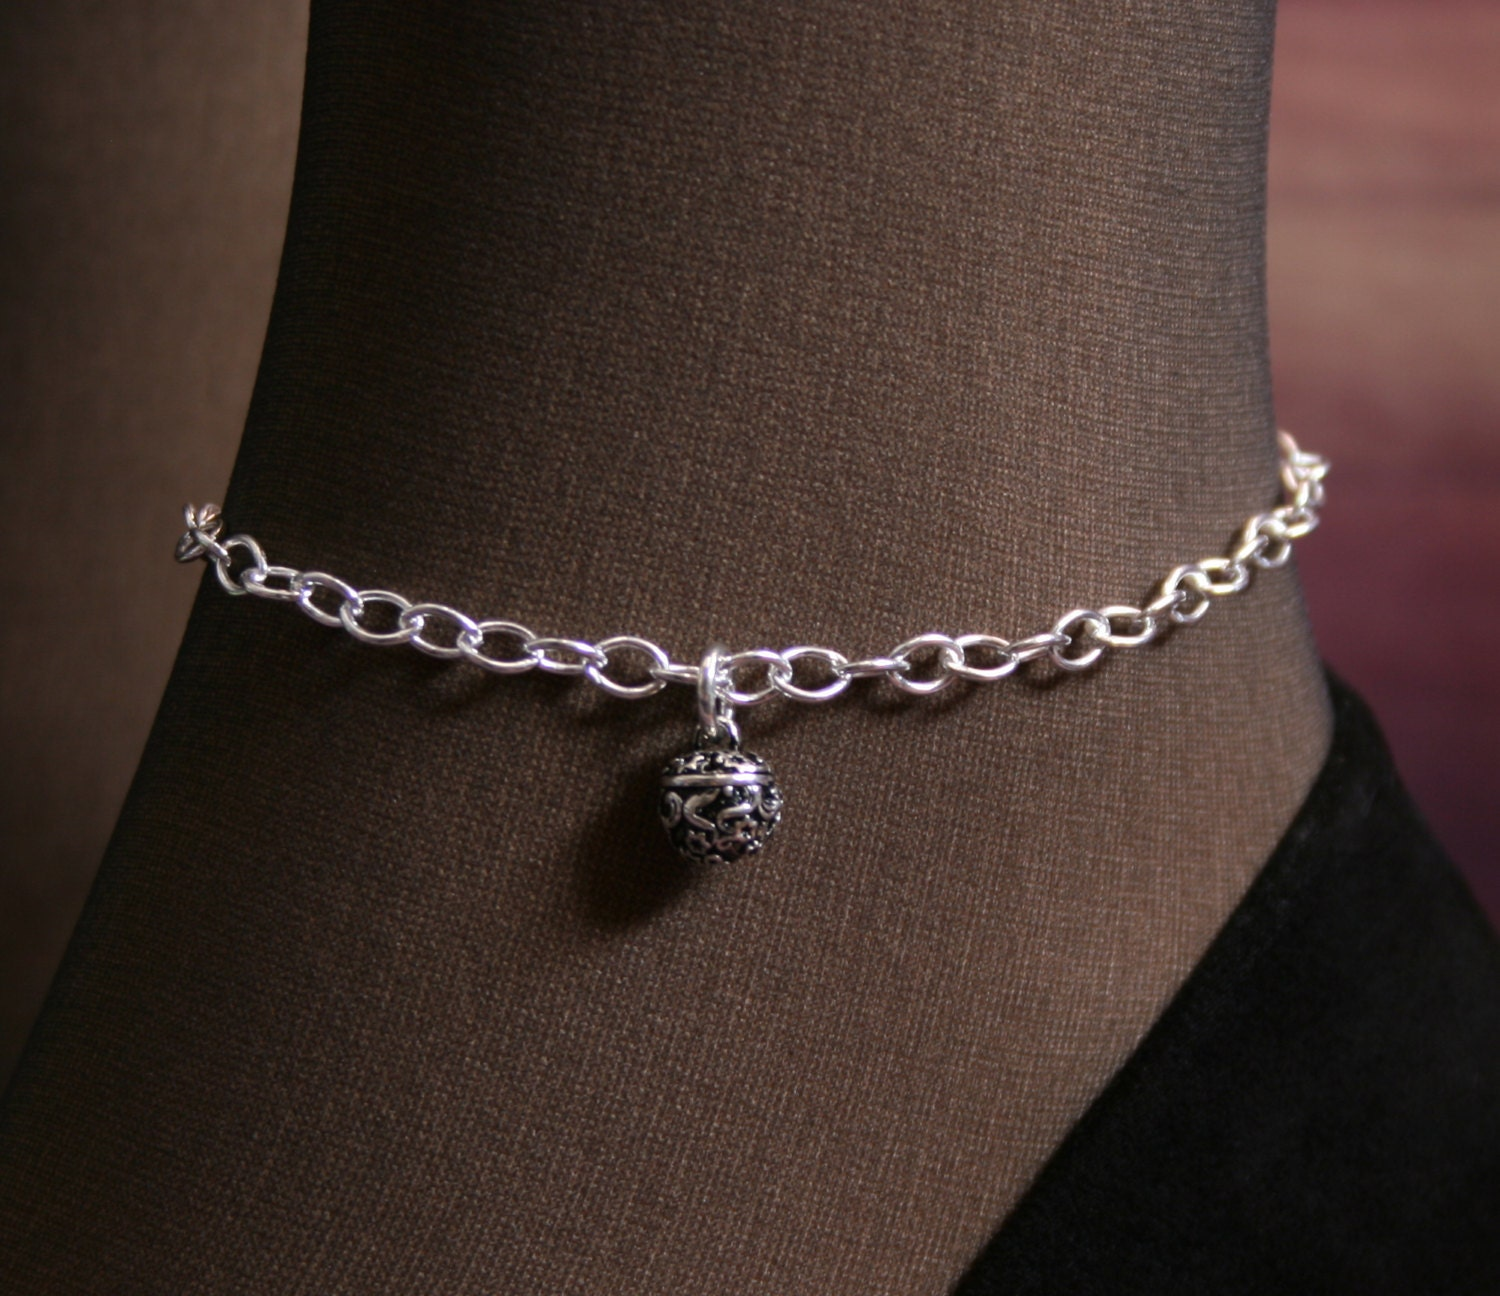 silver buy foot stylish jewelry oblacoder ee dual chain pretty anklet bell tinydeal locking slave bracelet cylinders